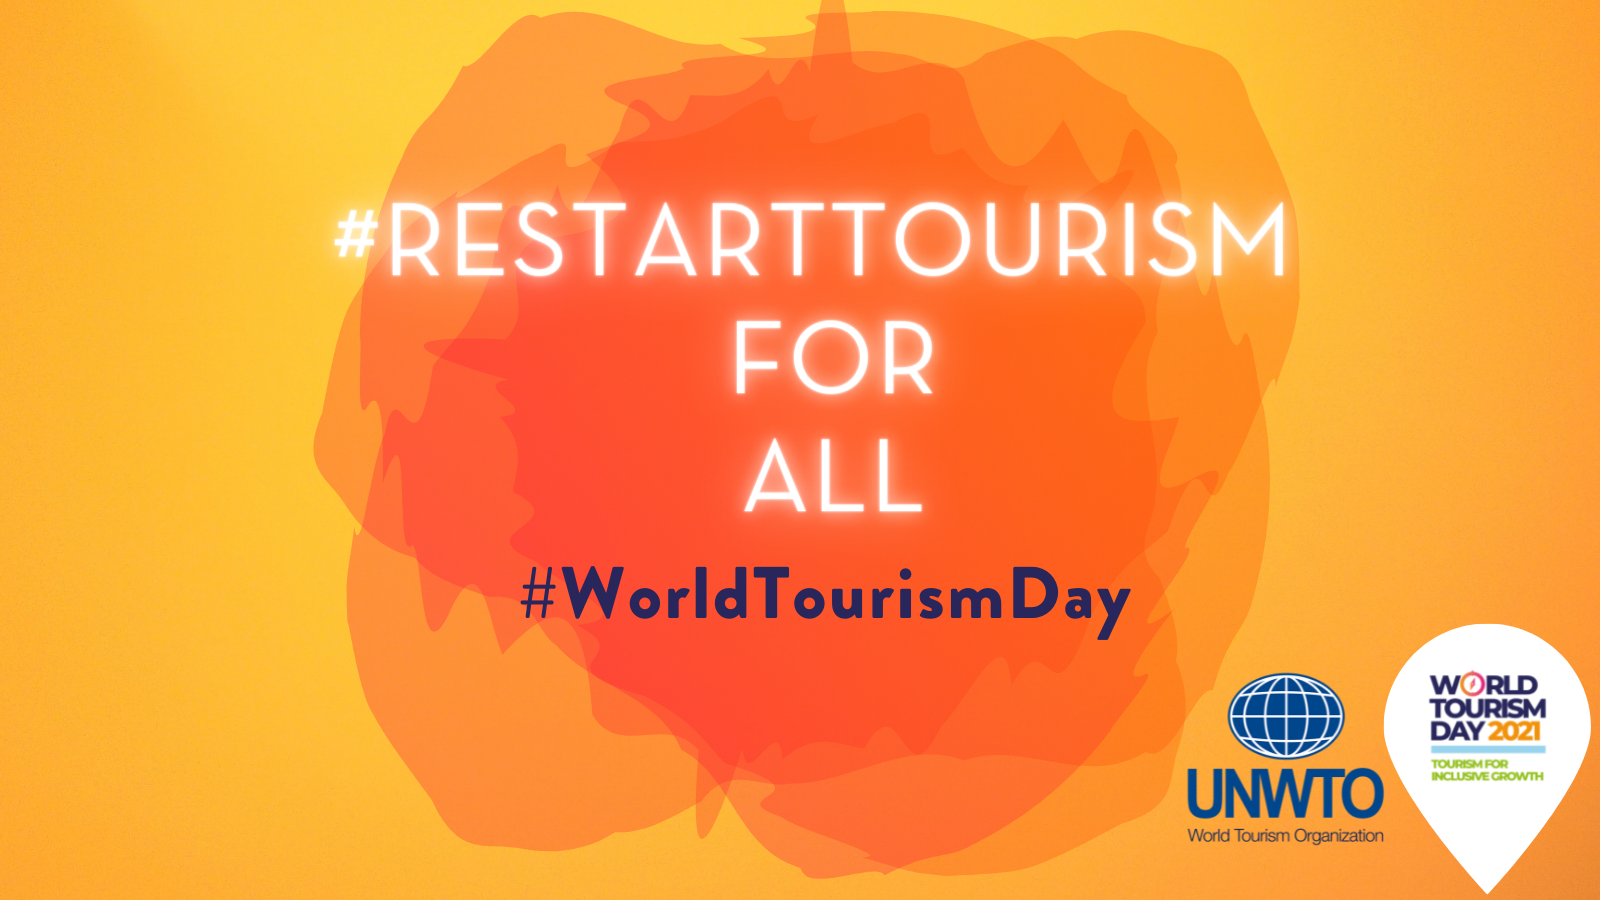 ISTO and ISTO Americas joined the celebrations of World Tourism Day 2021